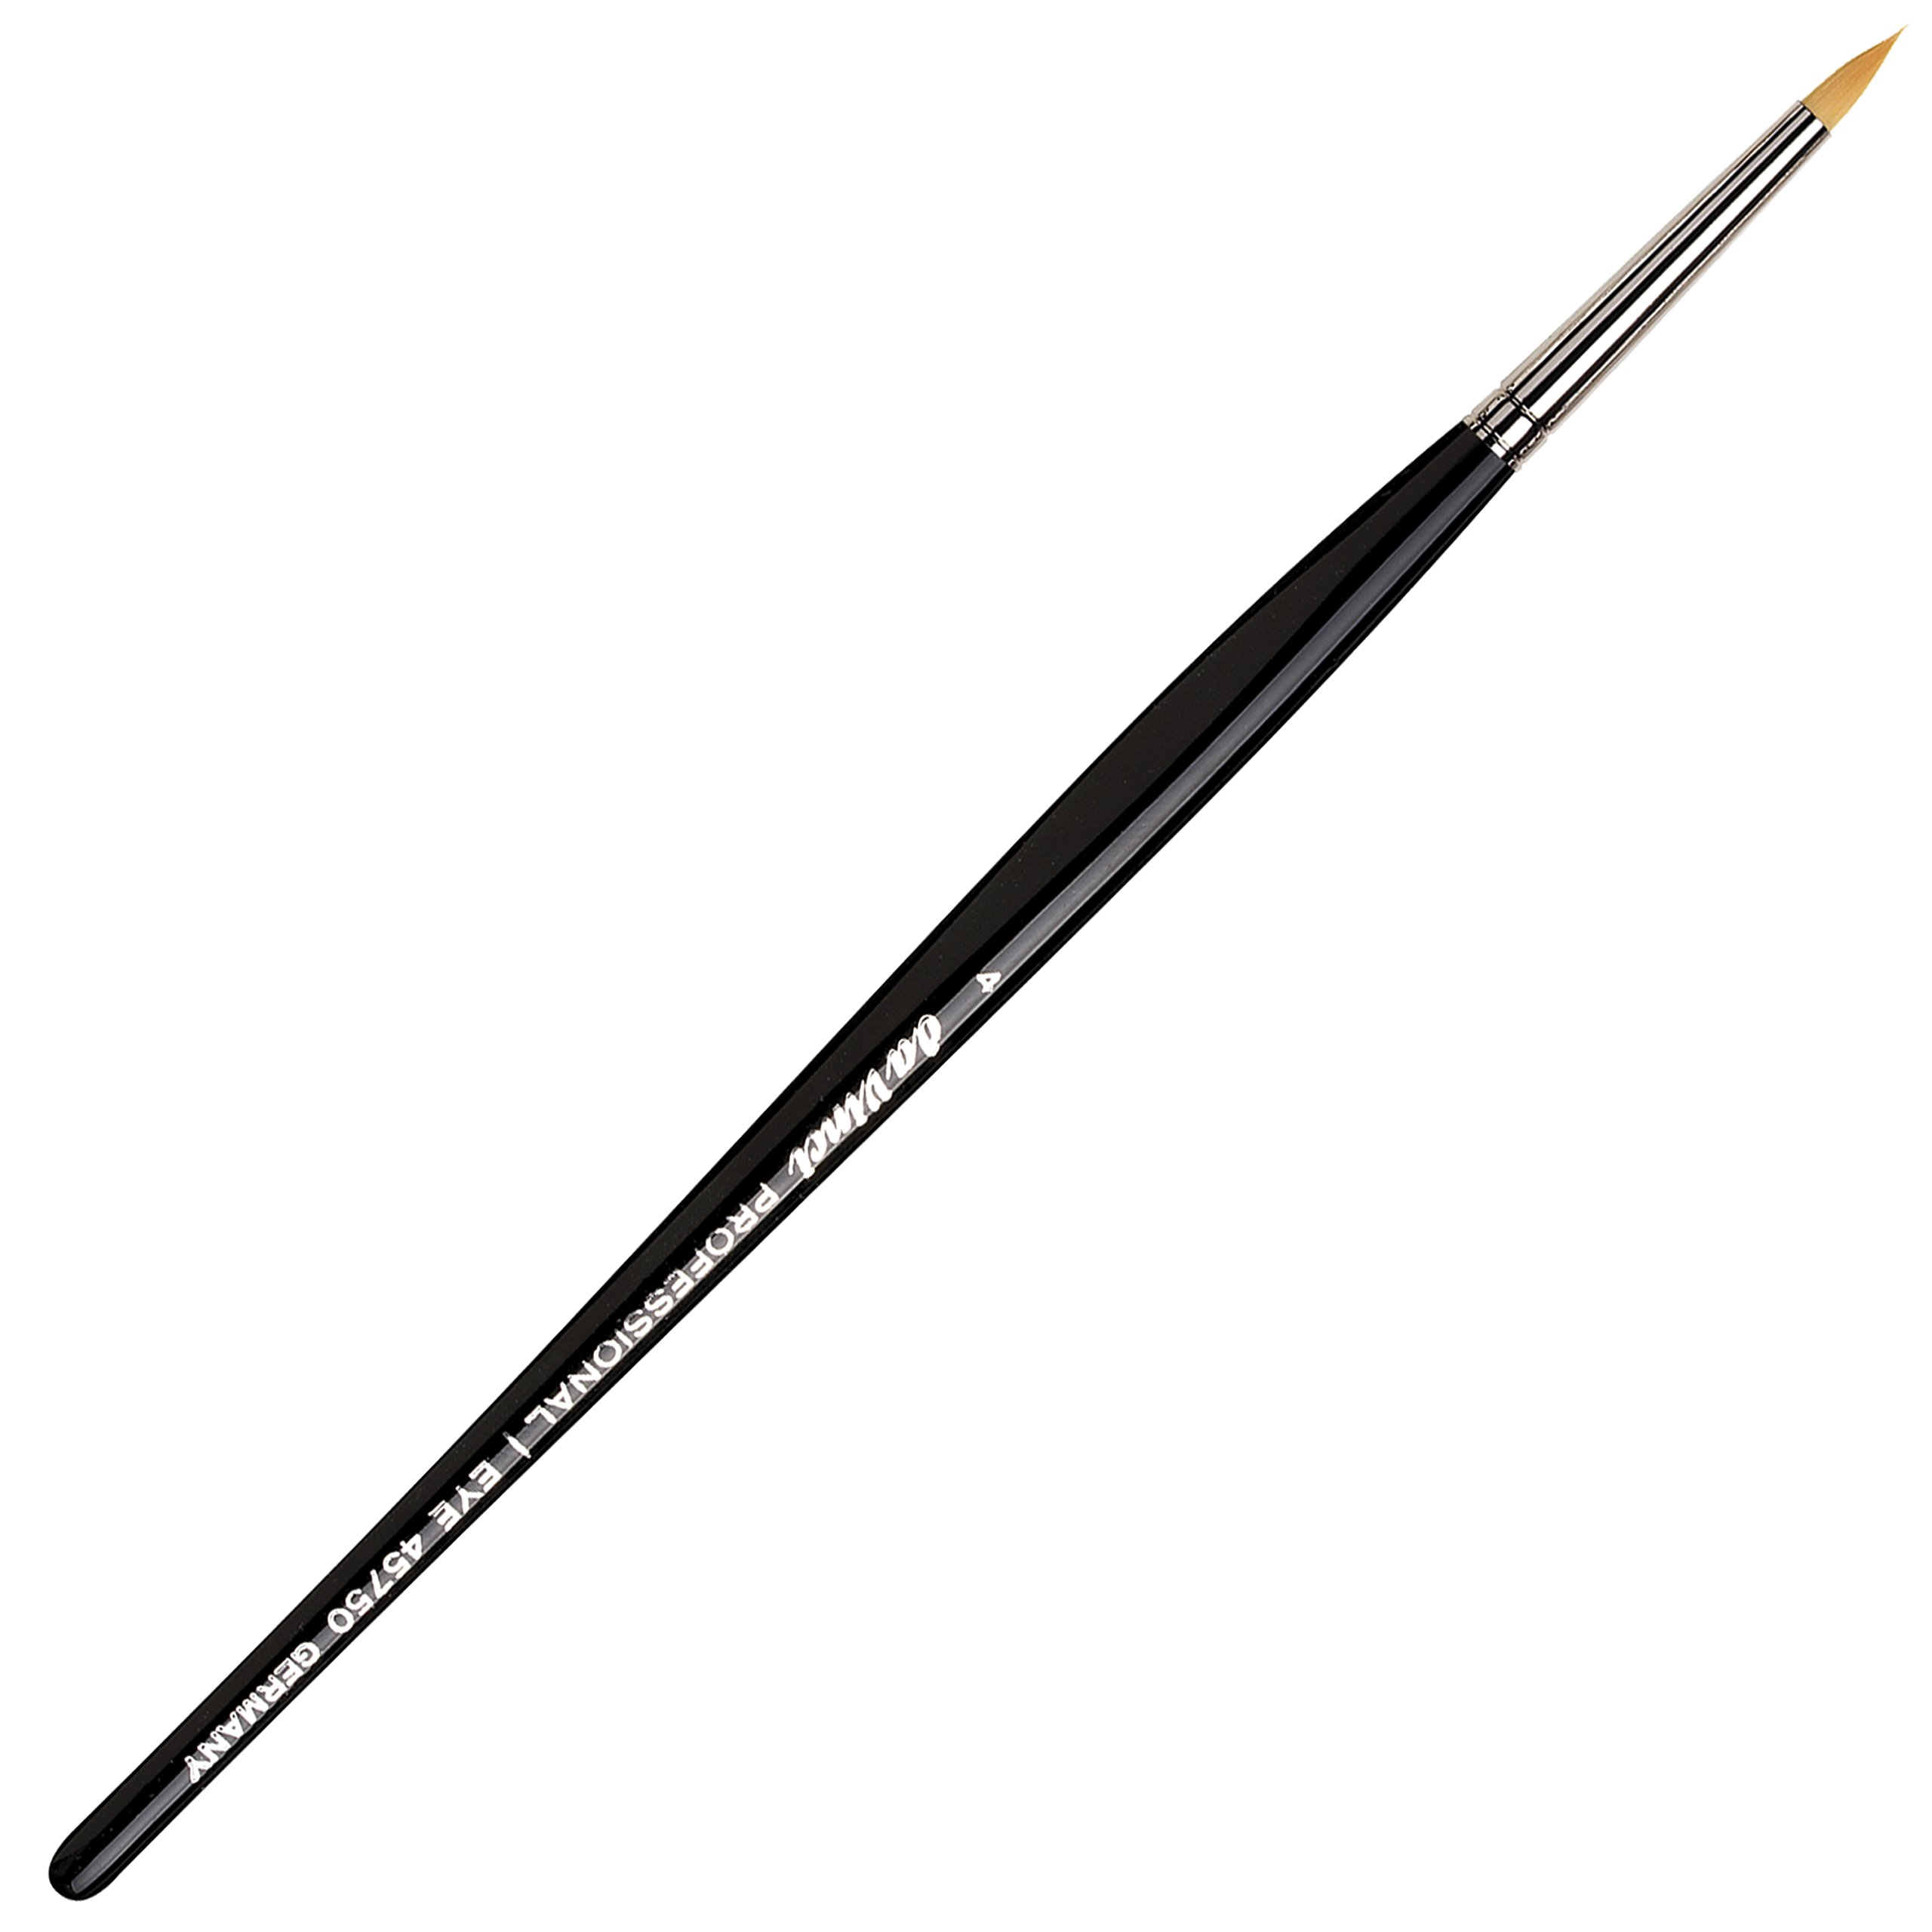 da Vinci Cosmetics Series 45750 Professional Eyeliner Brush, Pointed Round Synthetic, Size 4, 11.5 Gram